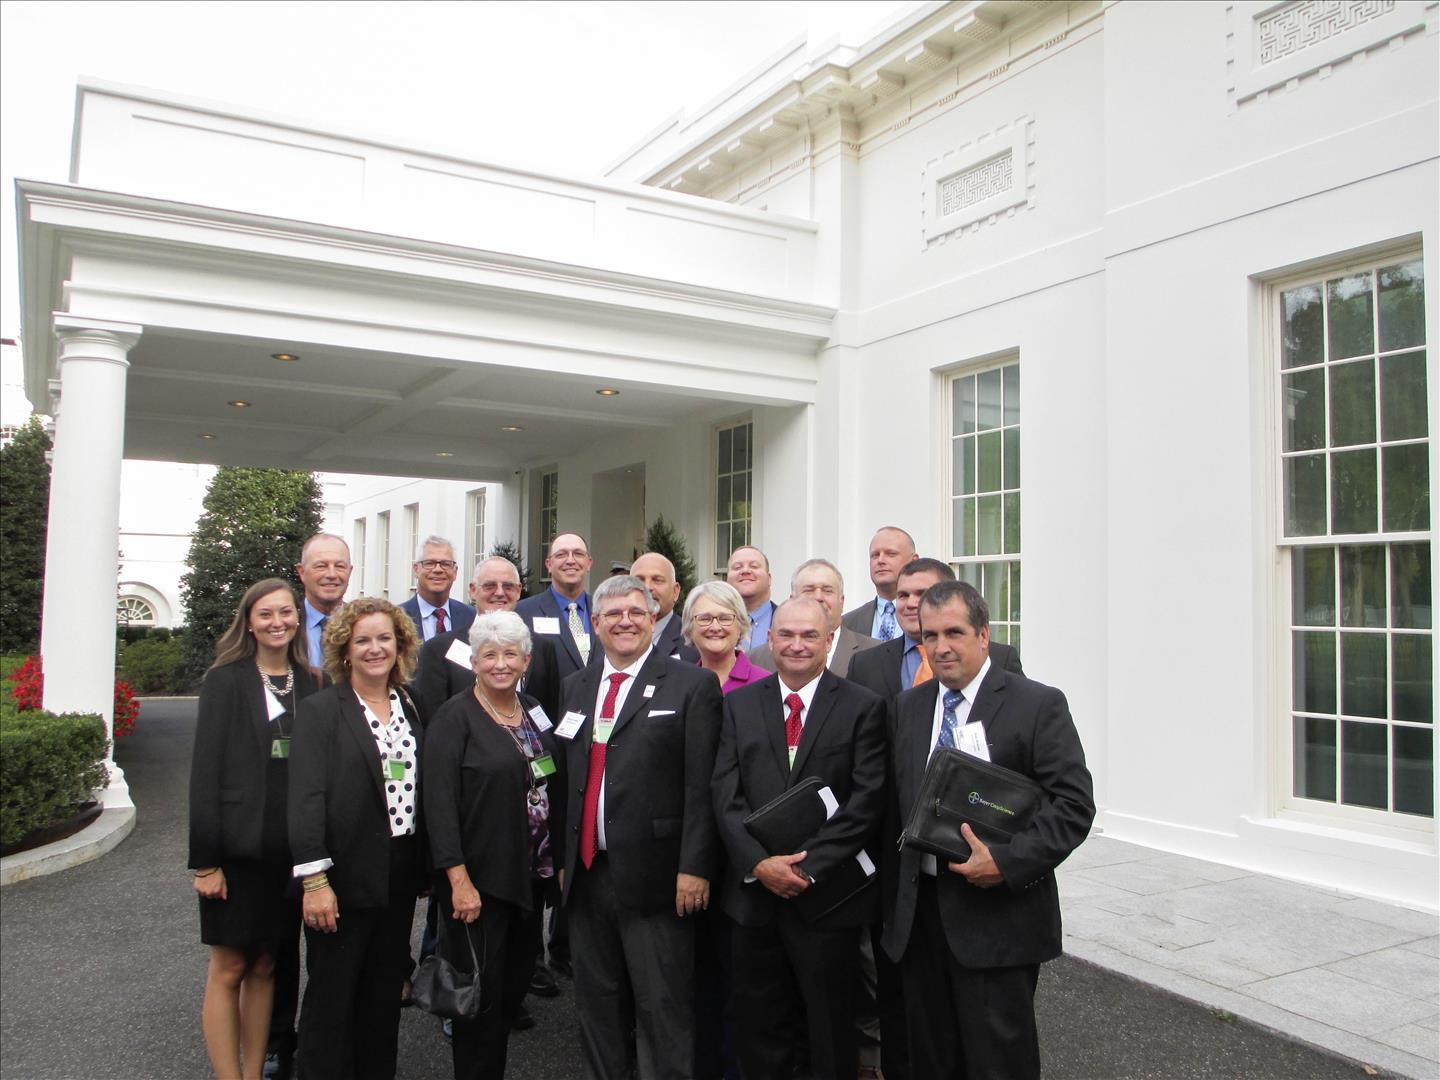 Farmers meet with U.S. legislators, staff in D.C.